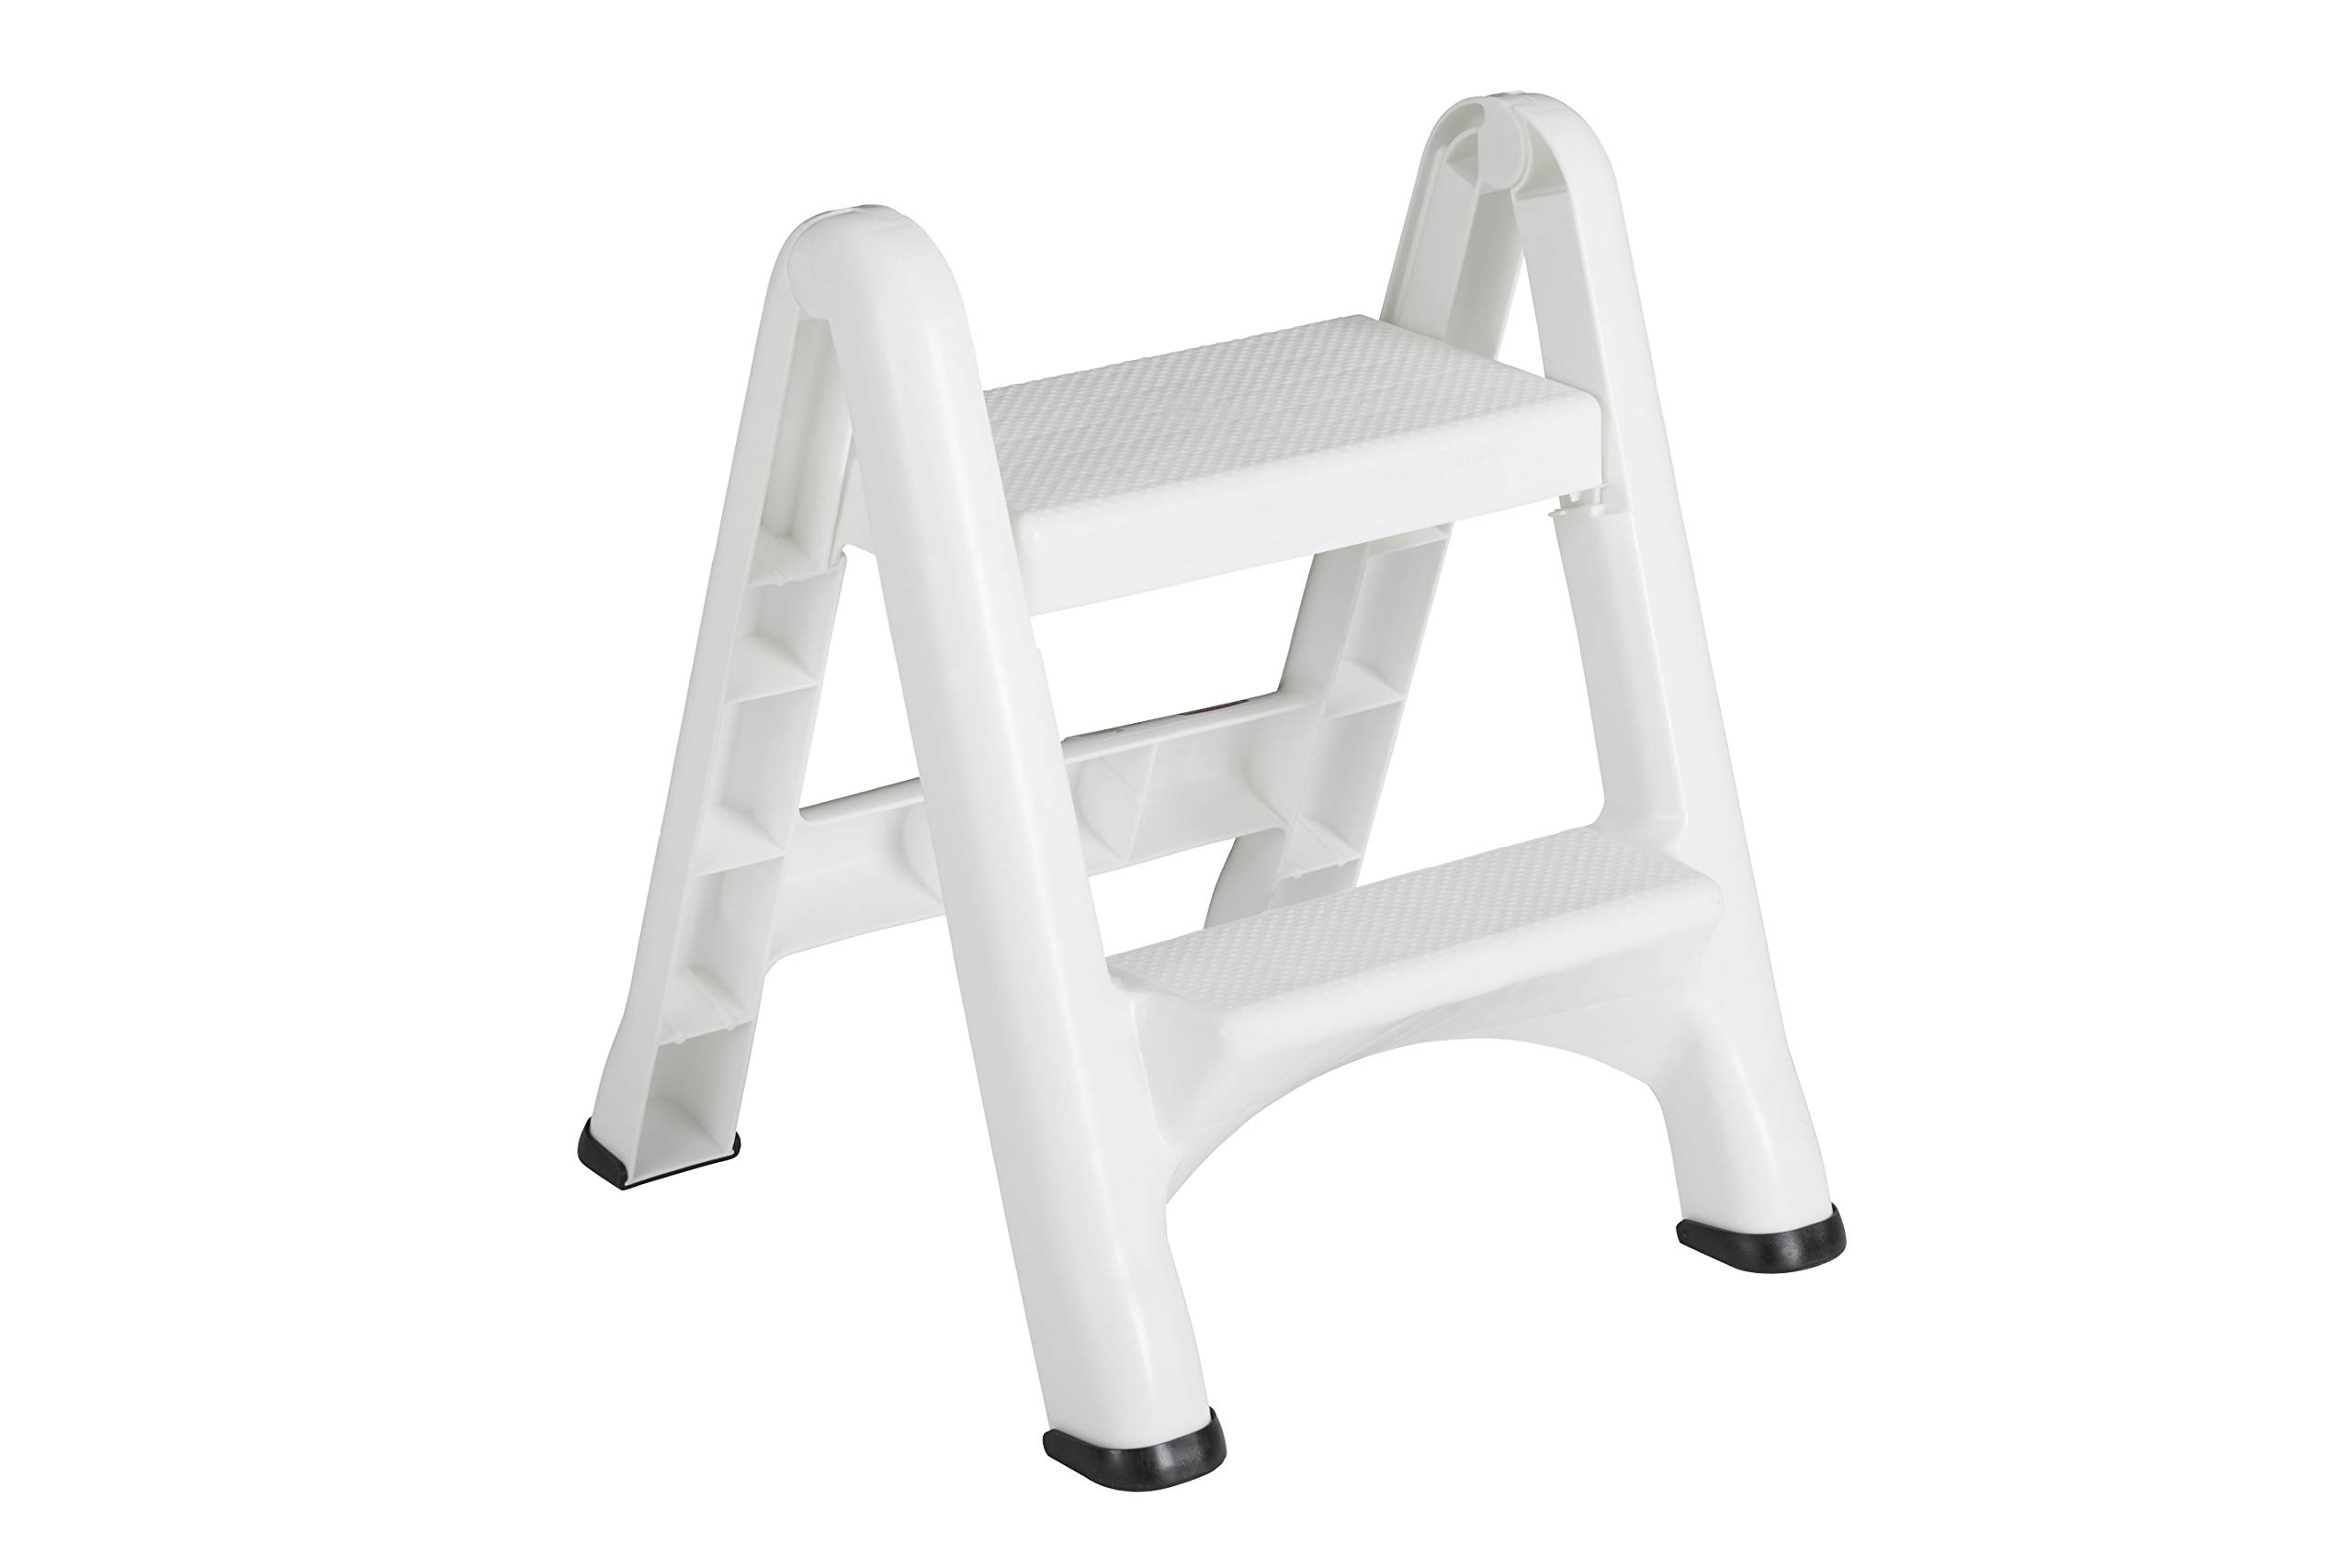 Rubbermaid Two-Step Folding Foot Stool, Small Step Stool, Step Stool for Adults, White